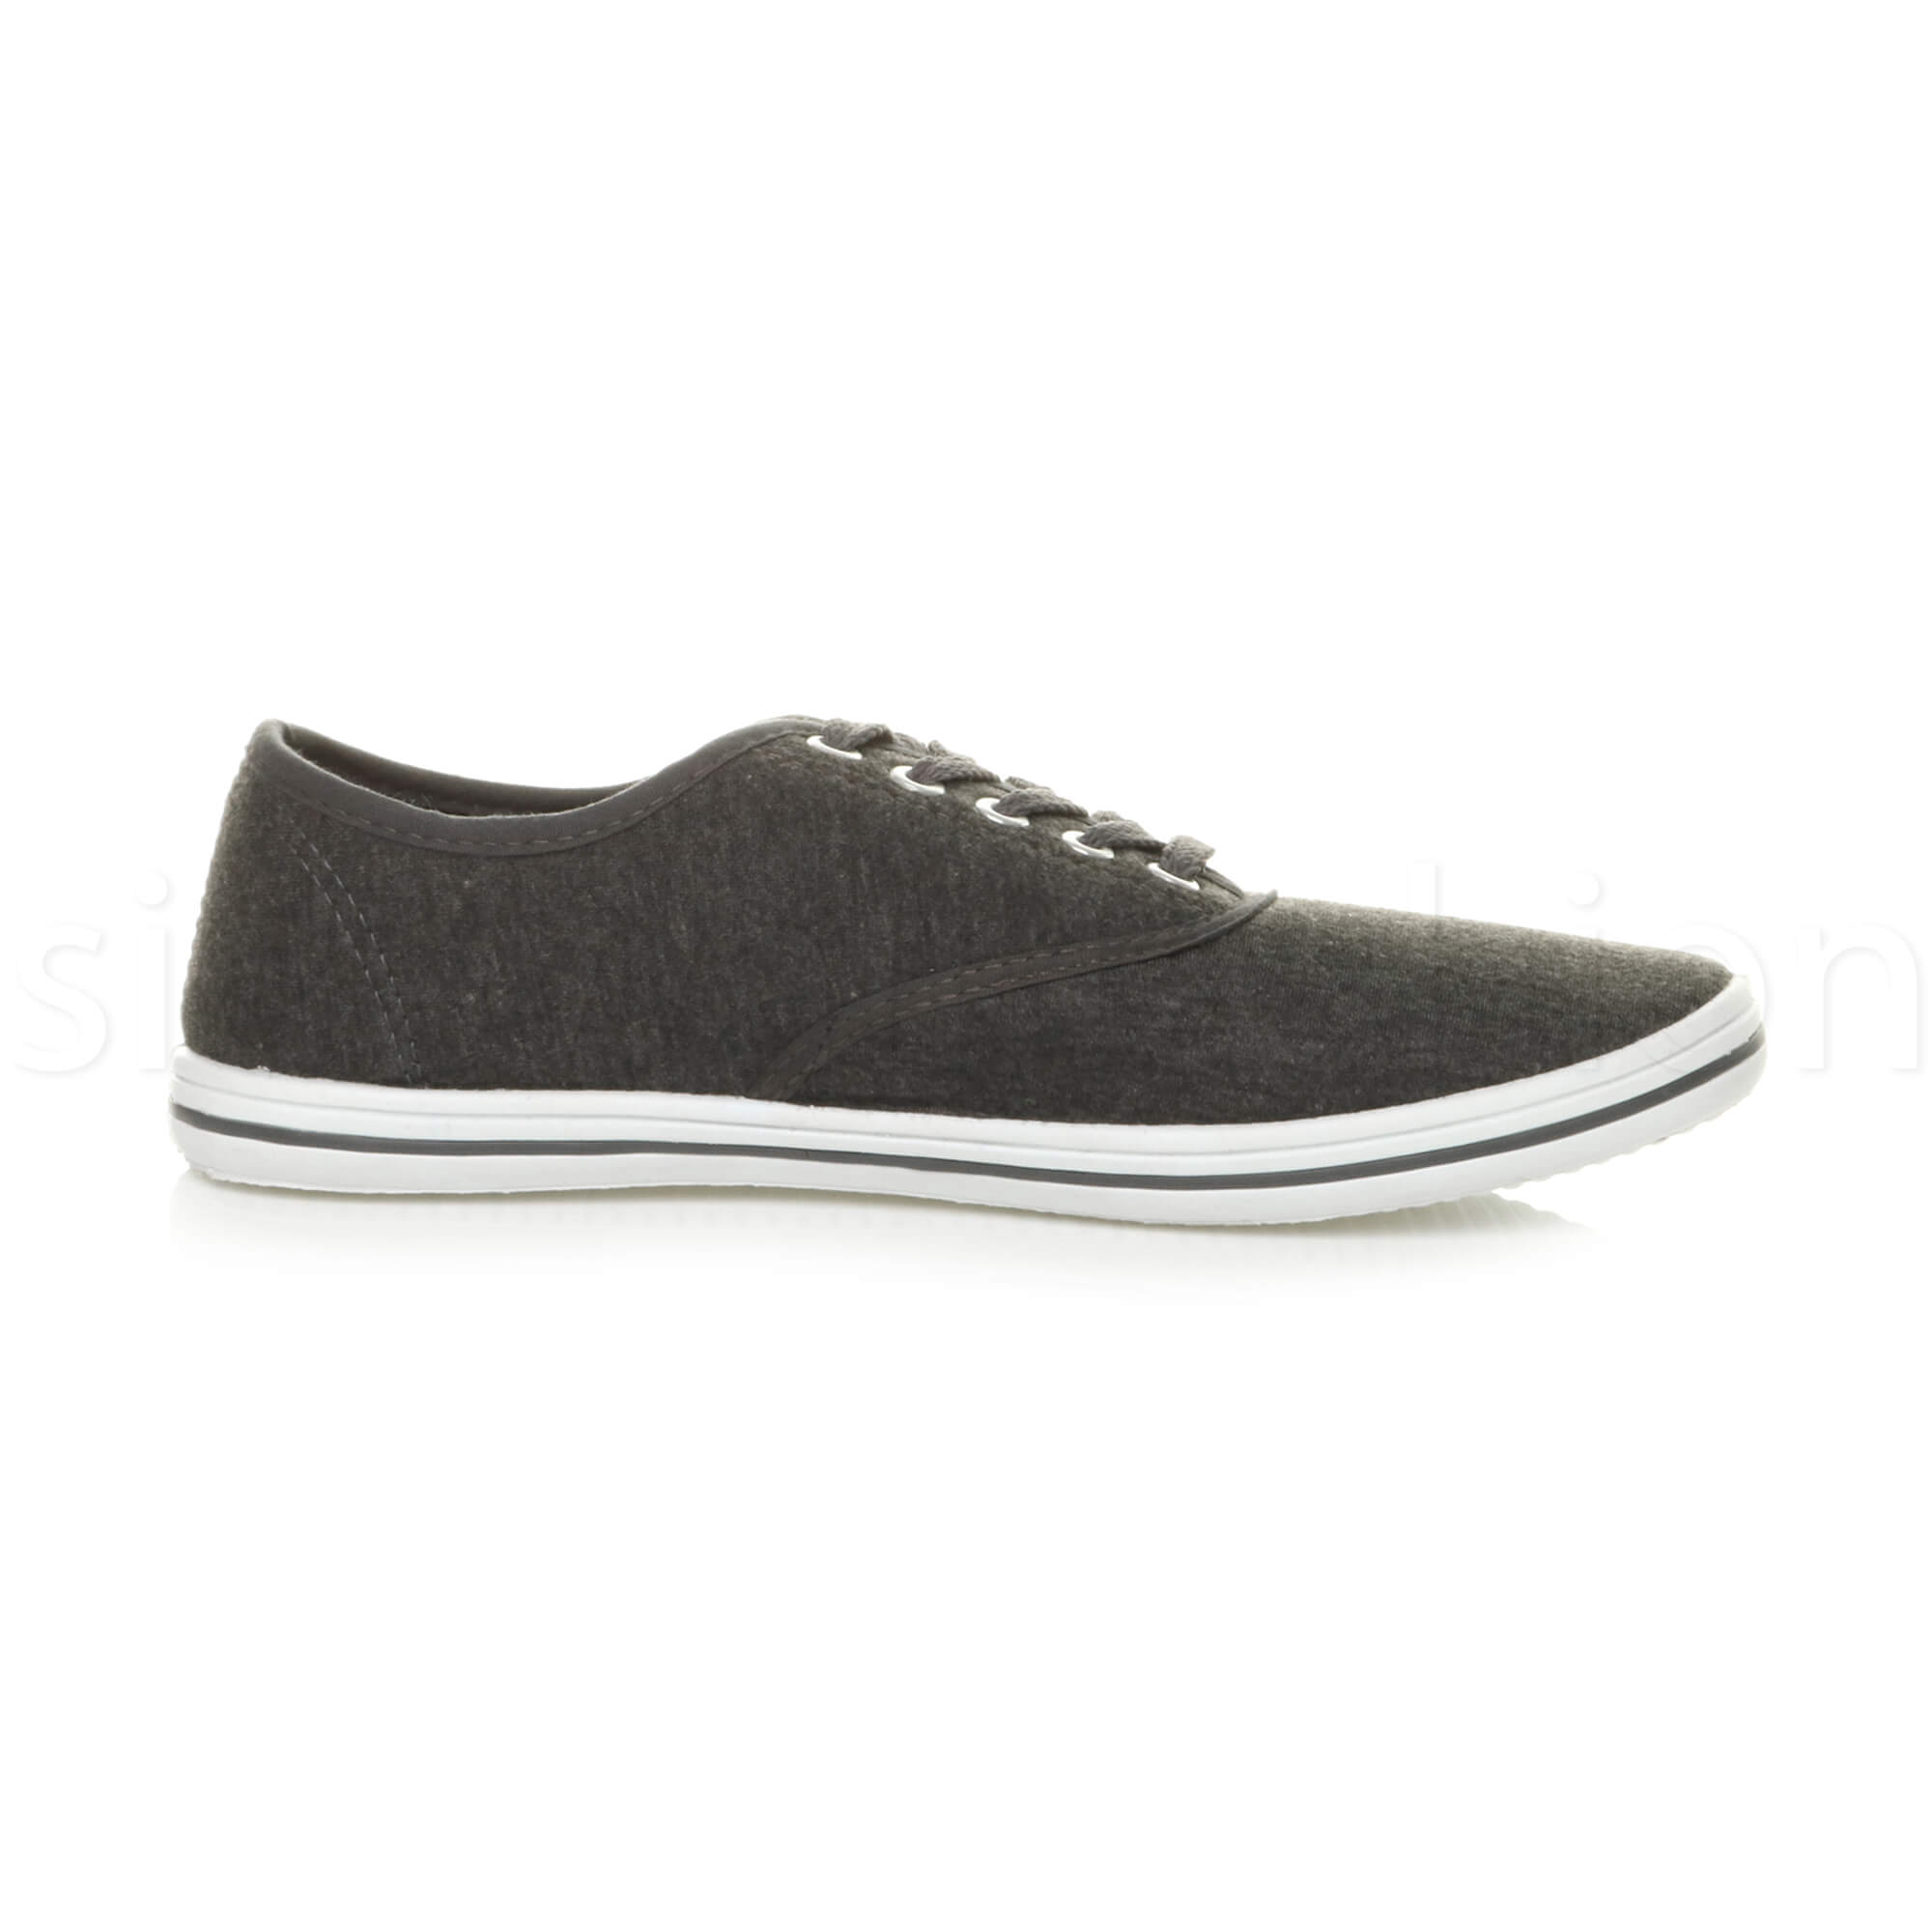 Mens-canvas-trainers-plimsoles-plimsolls-shoes-lace-up-pumps-size thumbnail 11